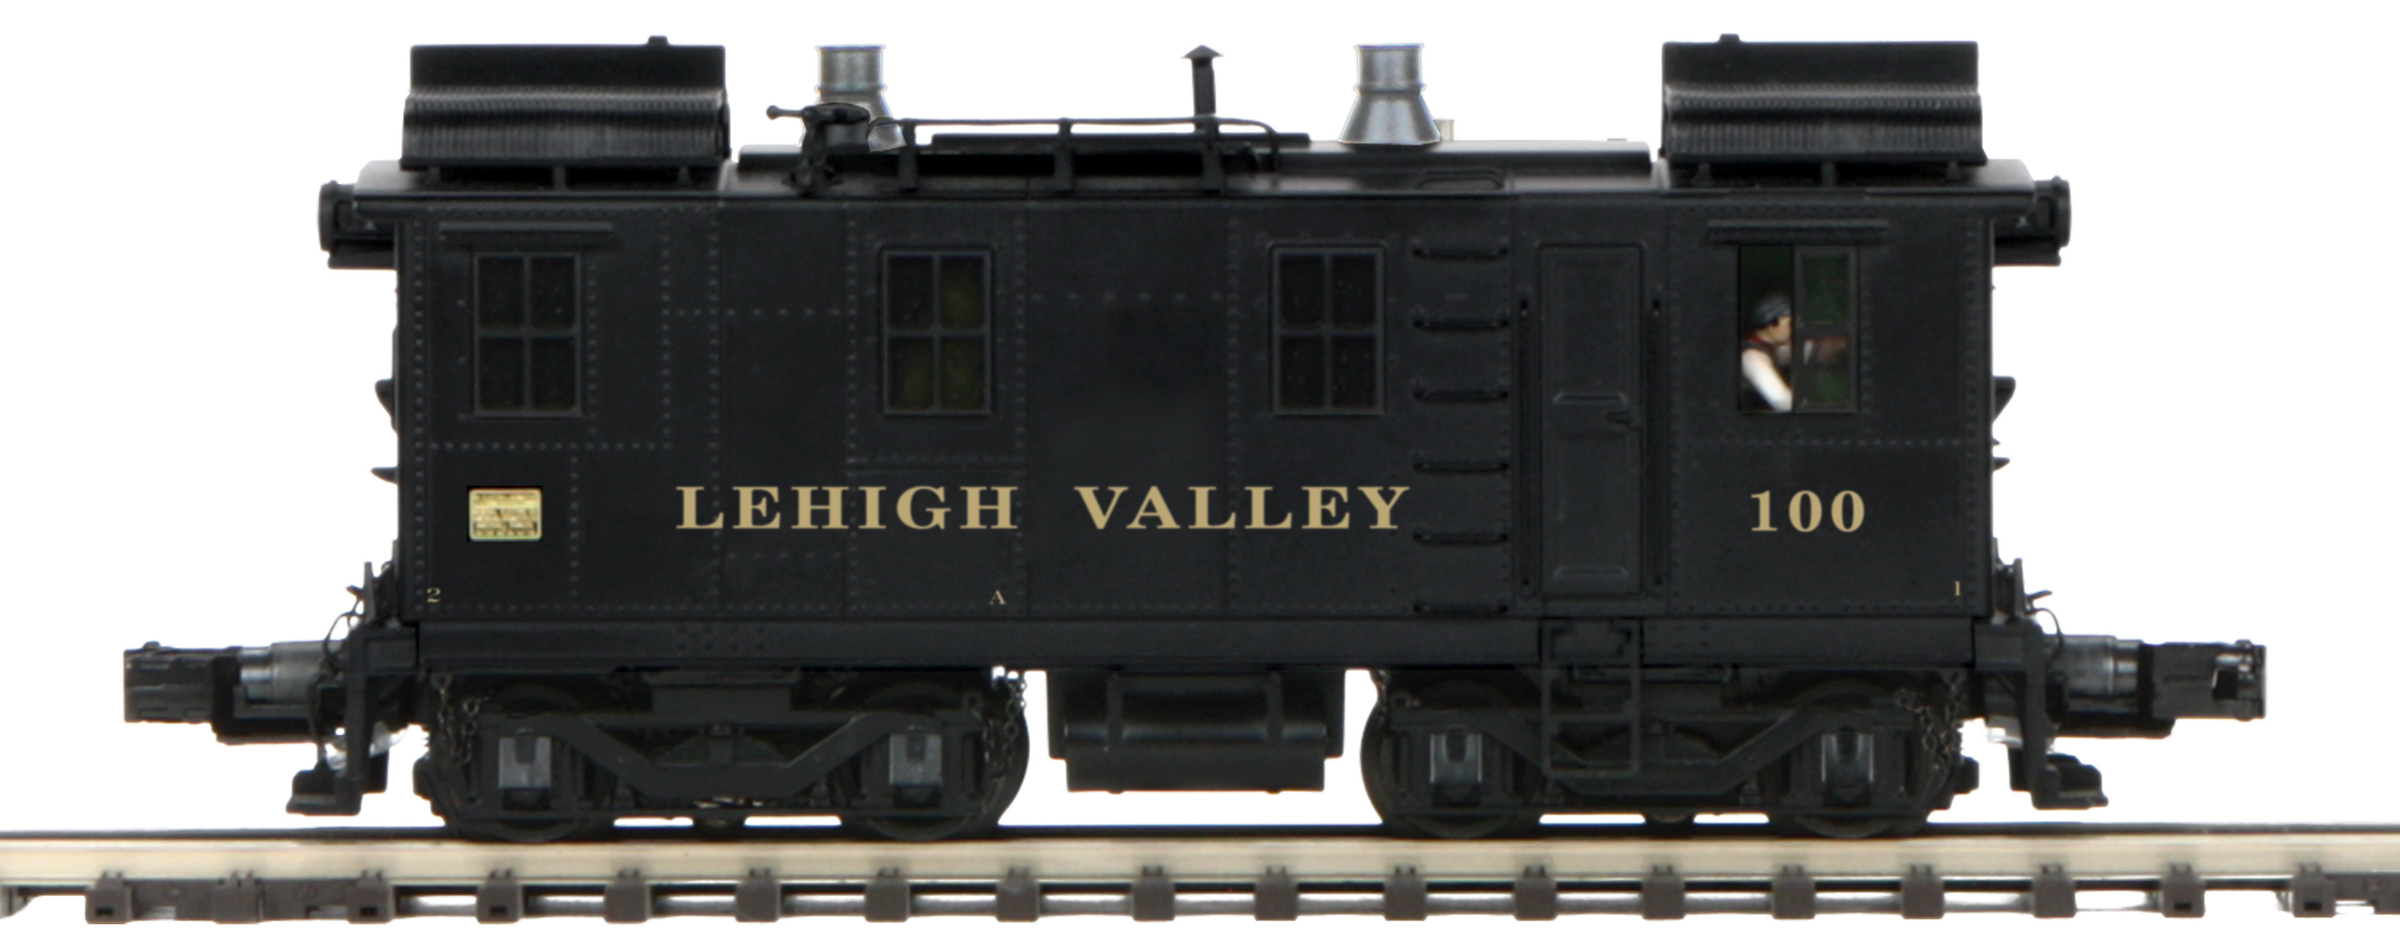 20 20945 1 Mth Electric Trains